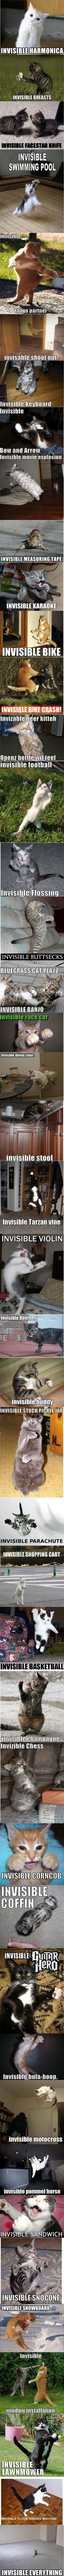 invisible-themed LOLs.